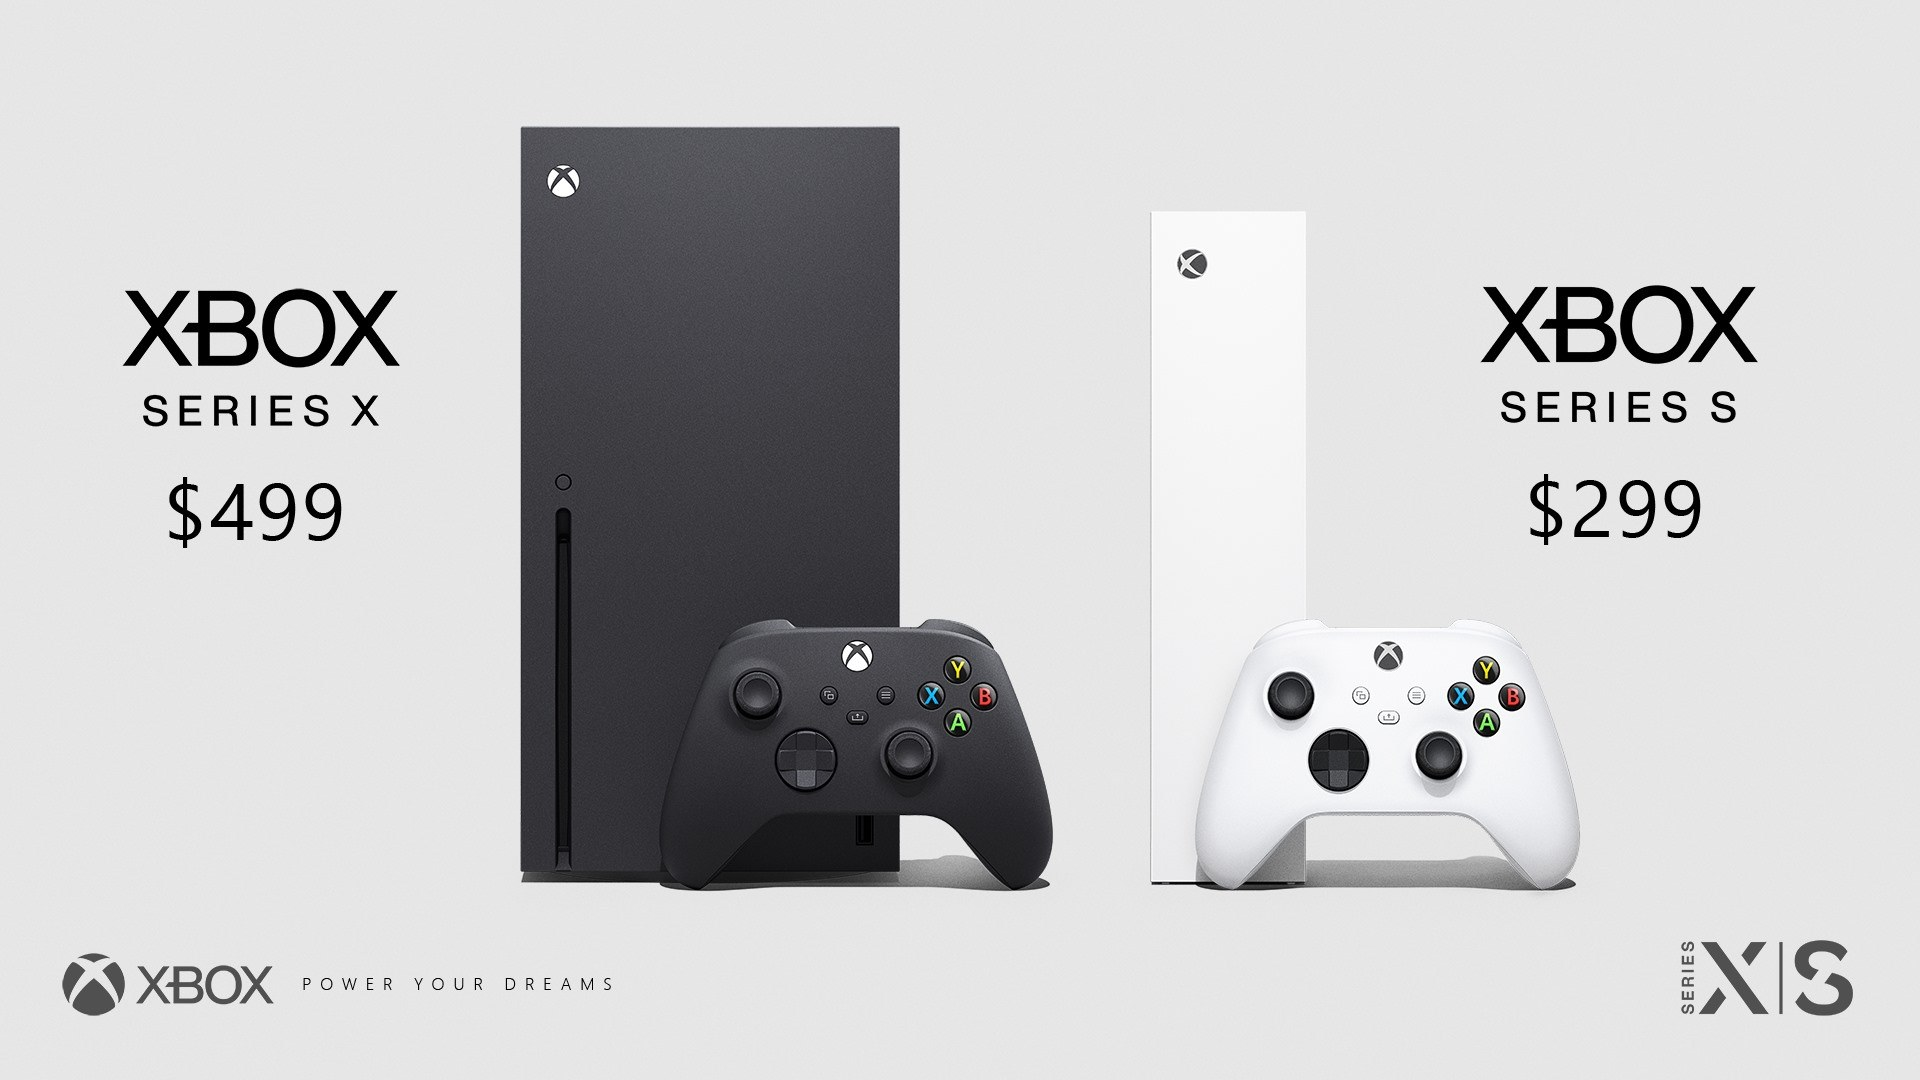 Microsoft Officially Announces Xbox Series S and Series X Consoles; Priced at US$299 and US$499 Respectively 23